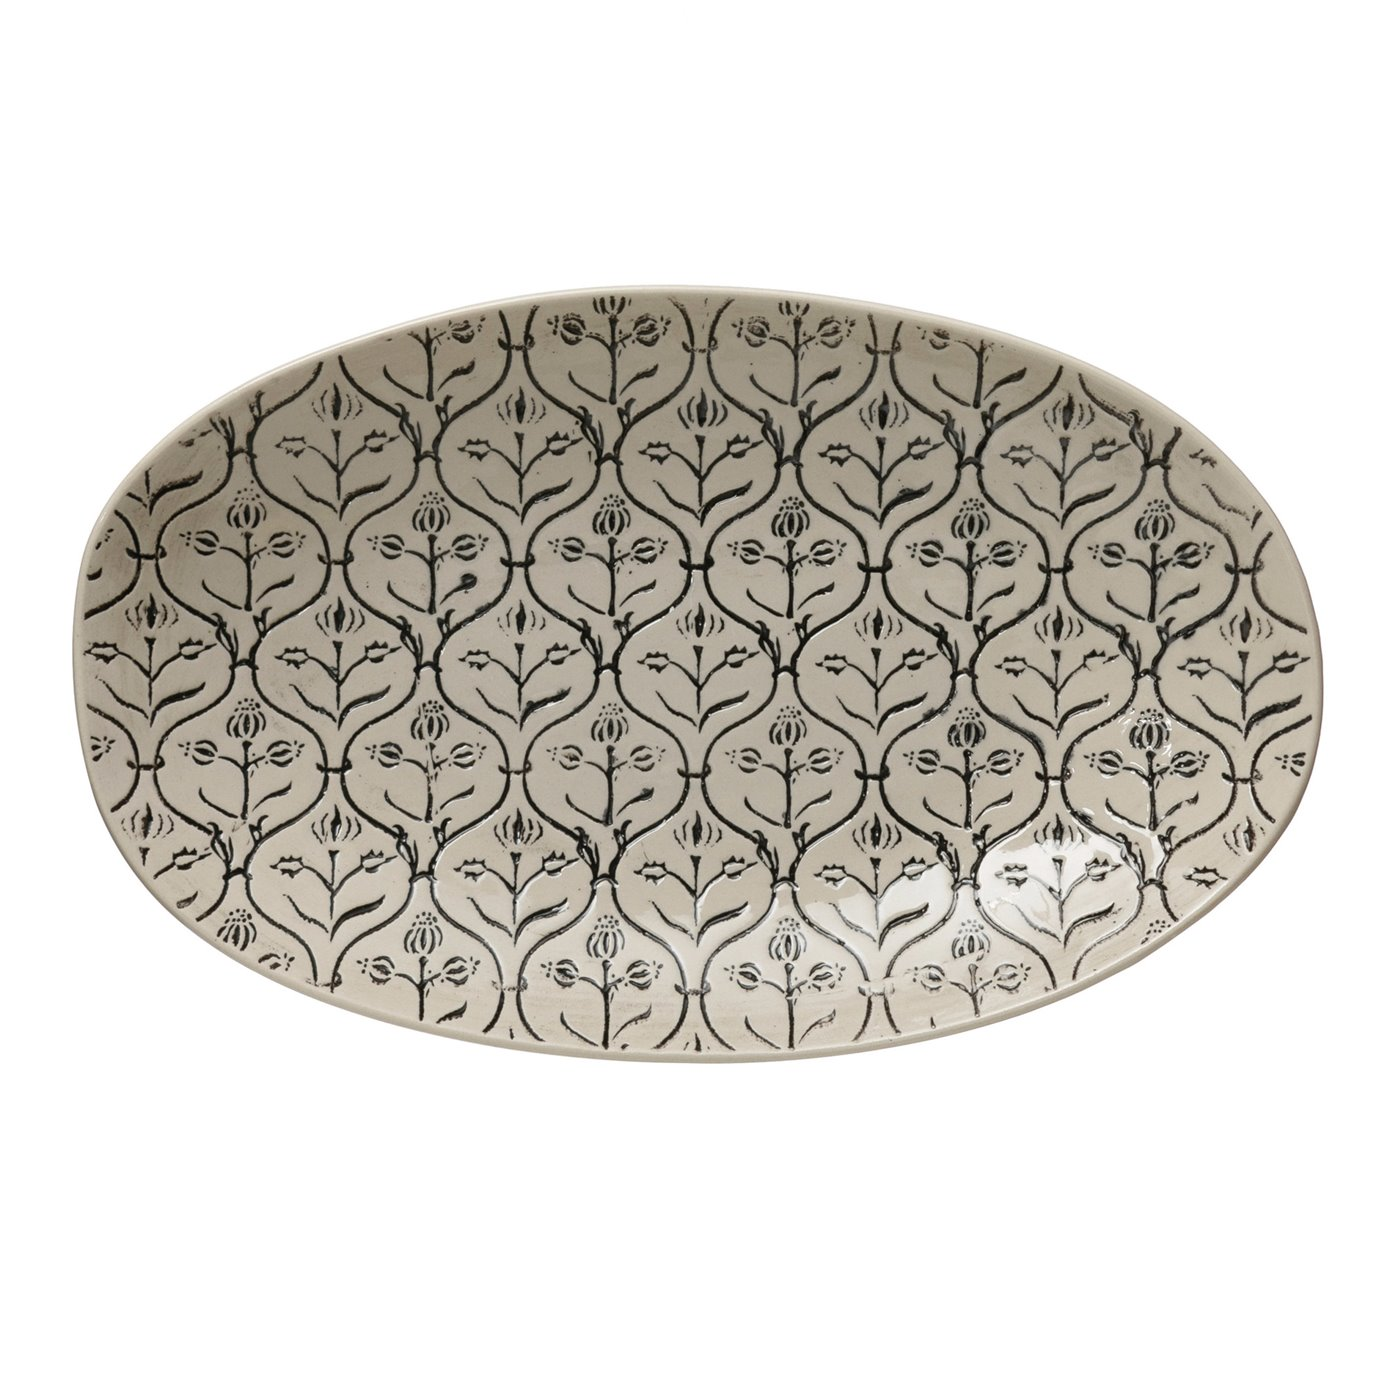 Hand-Stamped Stoneware Platter w/ Embossed Pattern, Black & Cream Color